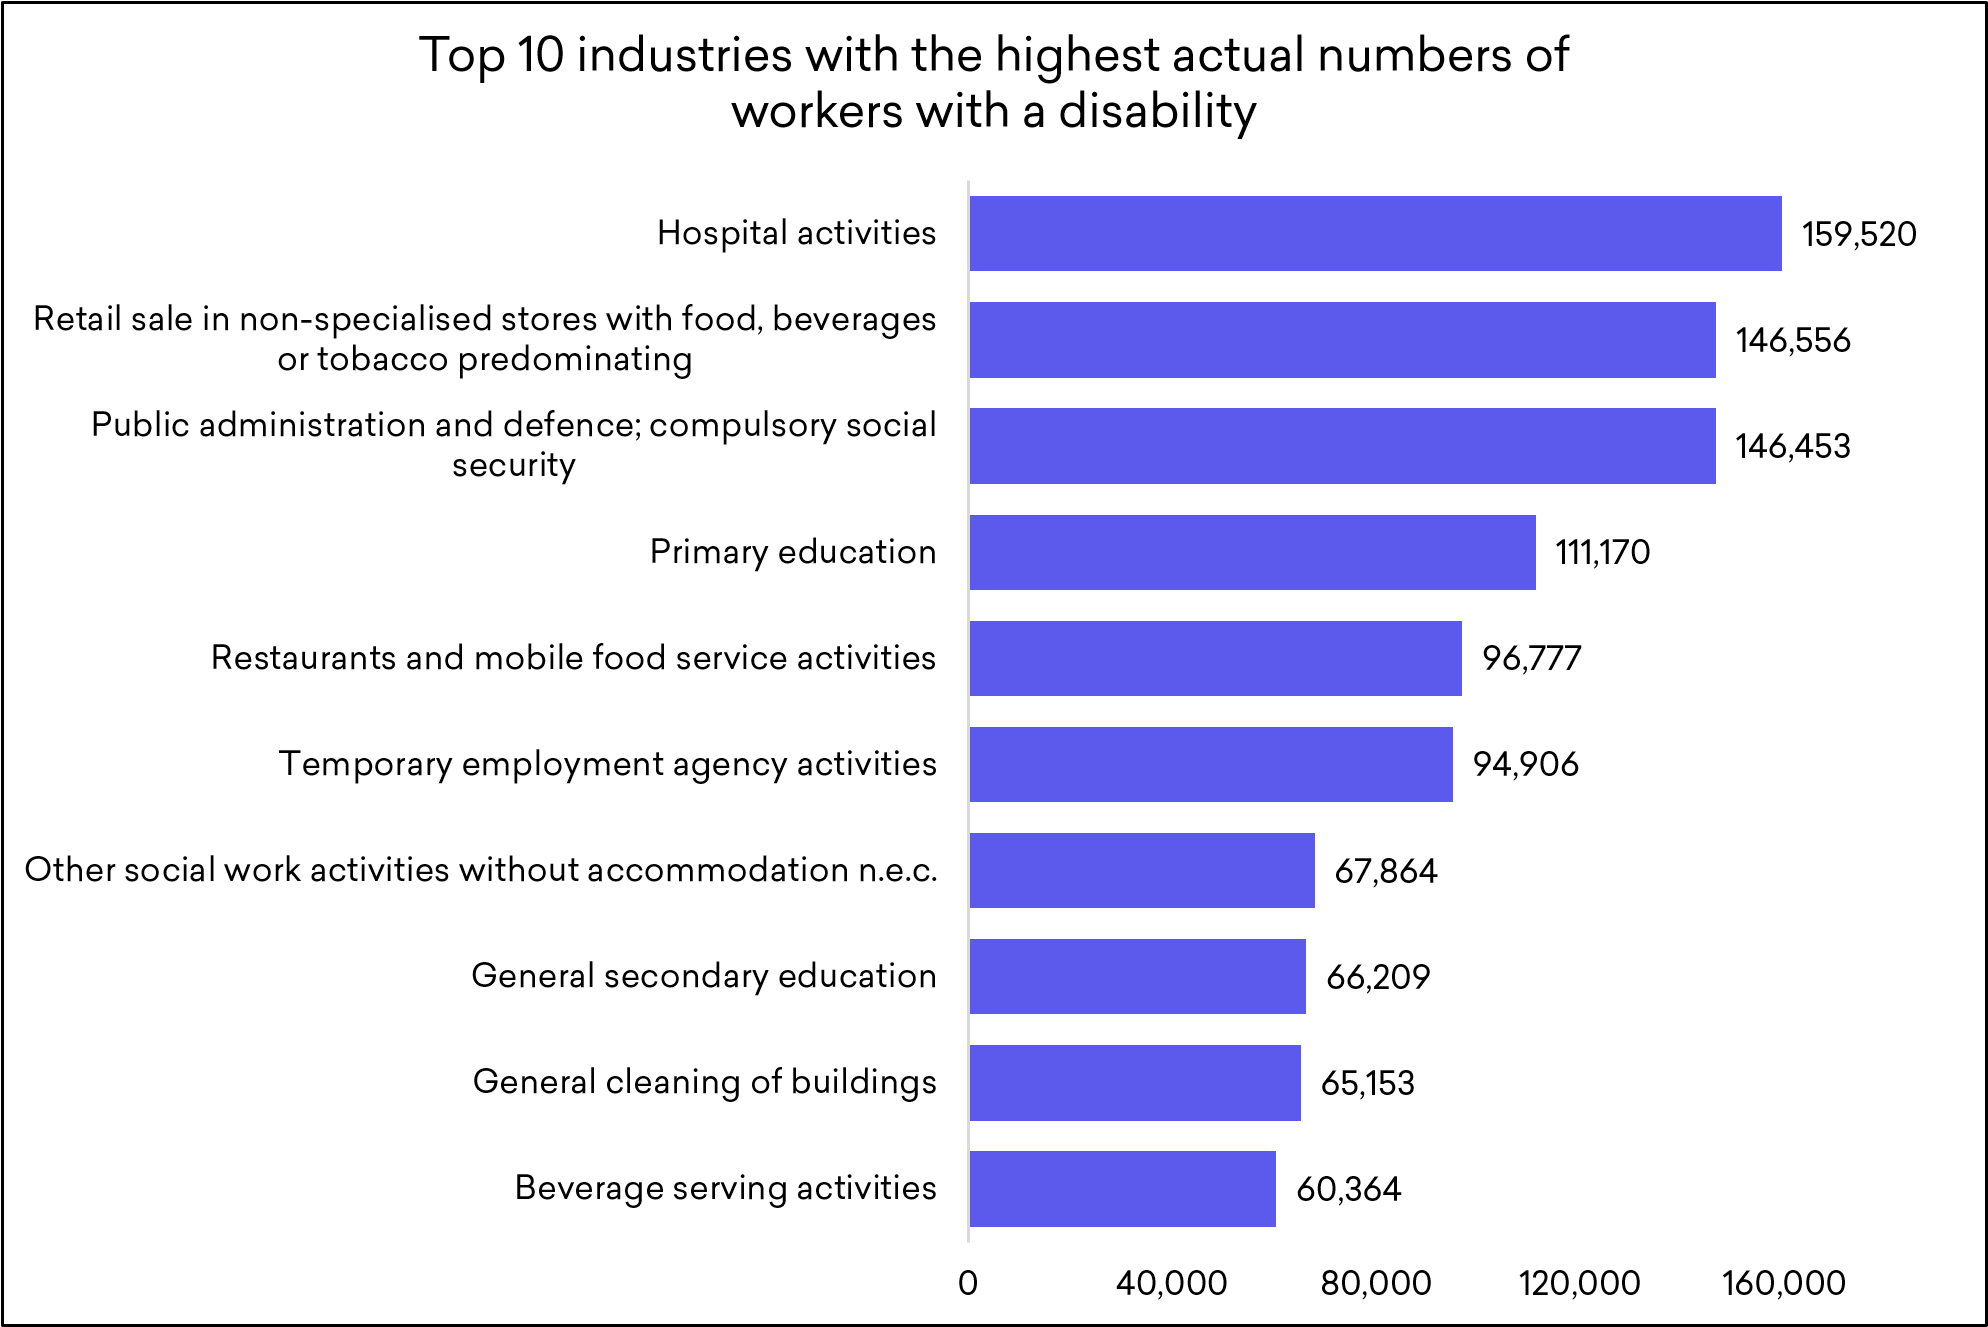 Top 10 industries with the highest actual numbers of workers with a disability